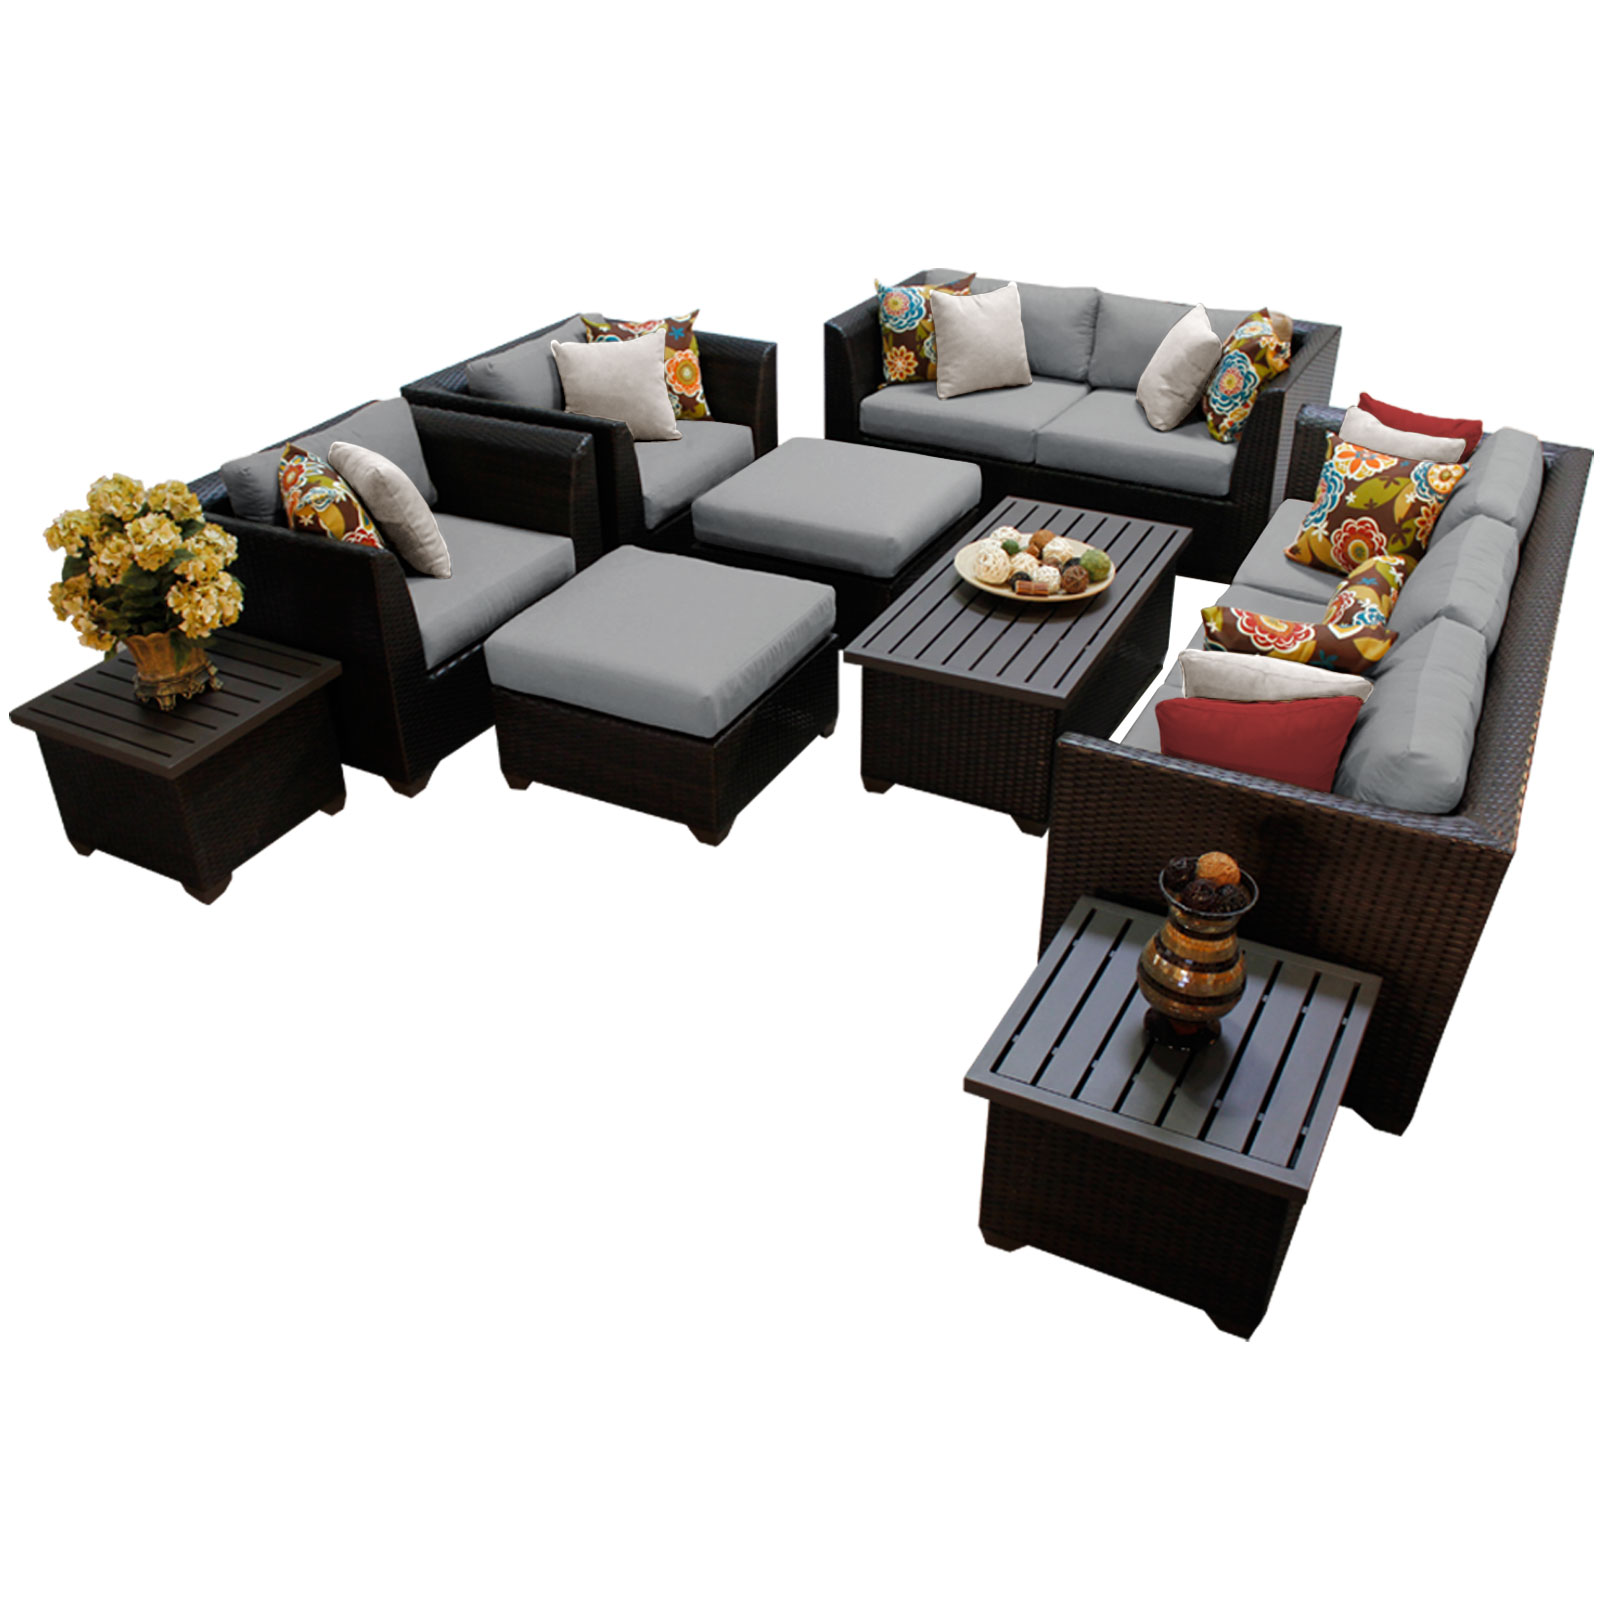 Bermuda 12 Piece Outdoor Wicker Patio Furniture Set 12d   Walmart.com